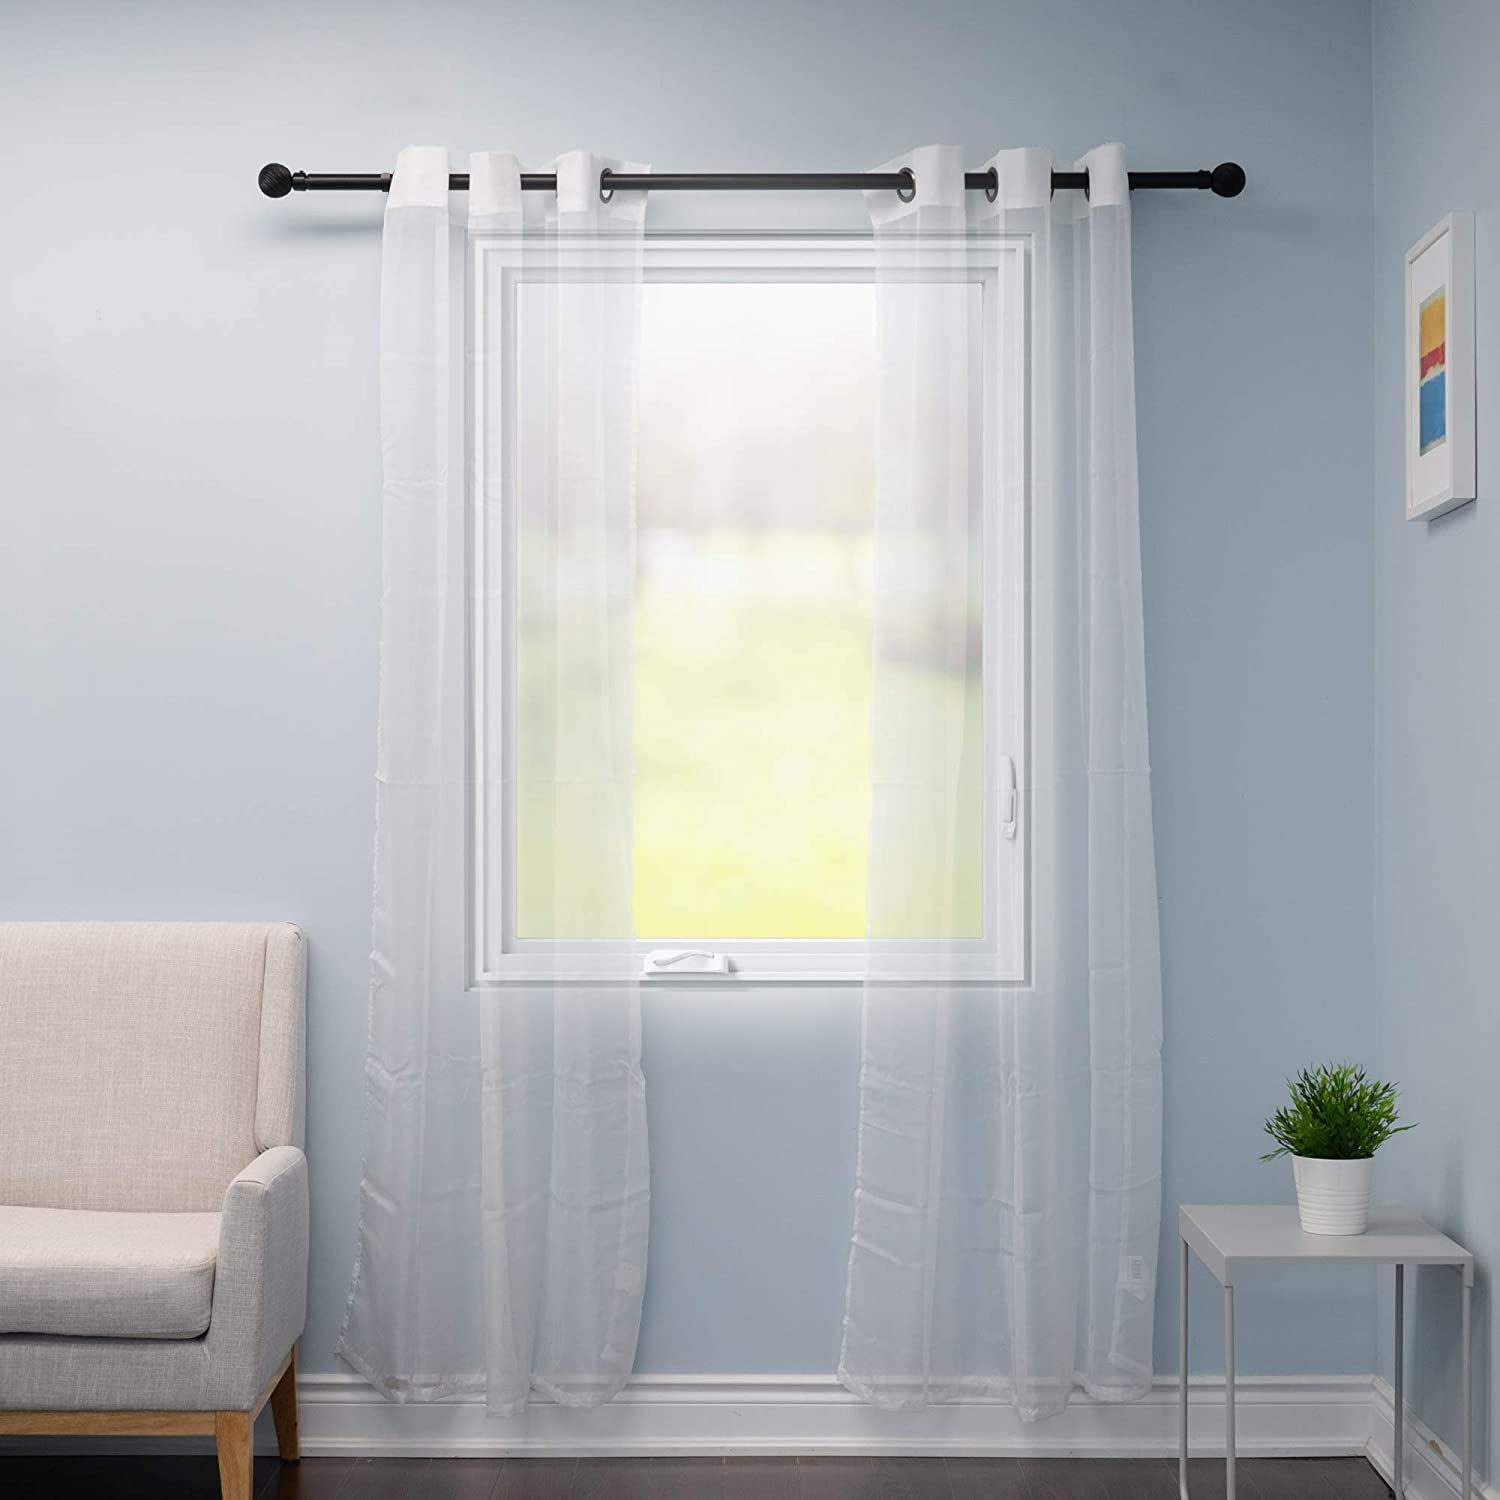 52 inches Wide Set of 2 /… Home Beyond White Window Sheer Voile Panel Curtain with Grommets 84 inches Long